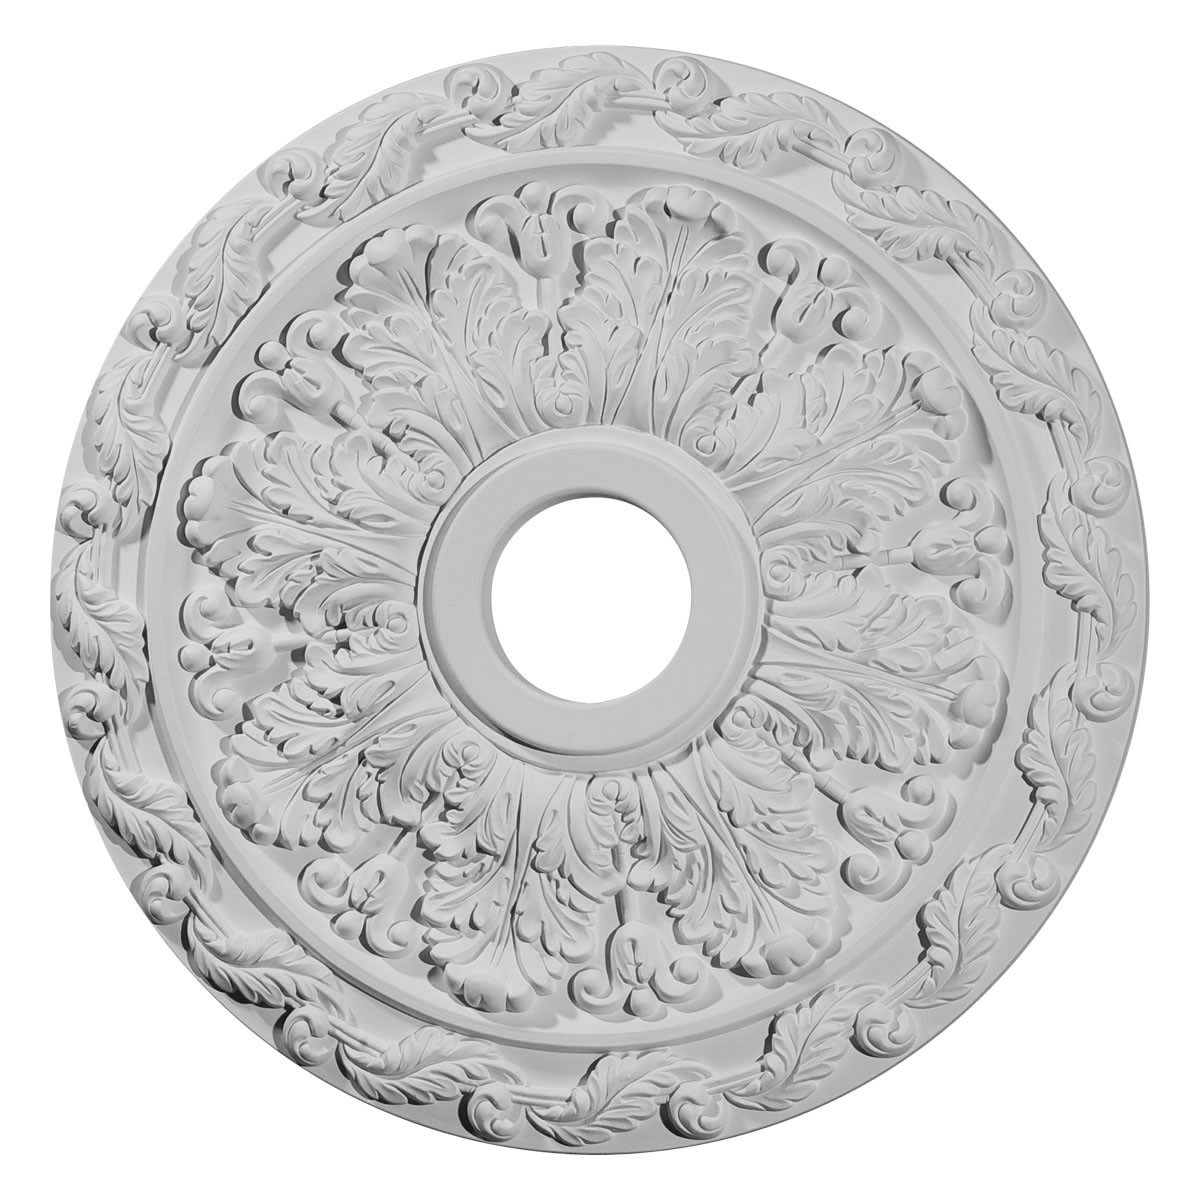 """EM-CM19SP - 19 7/8""""OD x 3 5/8""""ID x 1 1/4""""P Spring Leaf Ceiling Medallion (Fits Canopies up to 5 5/8"""")"""